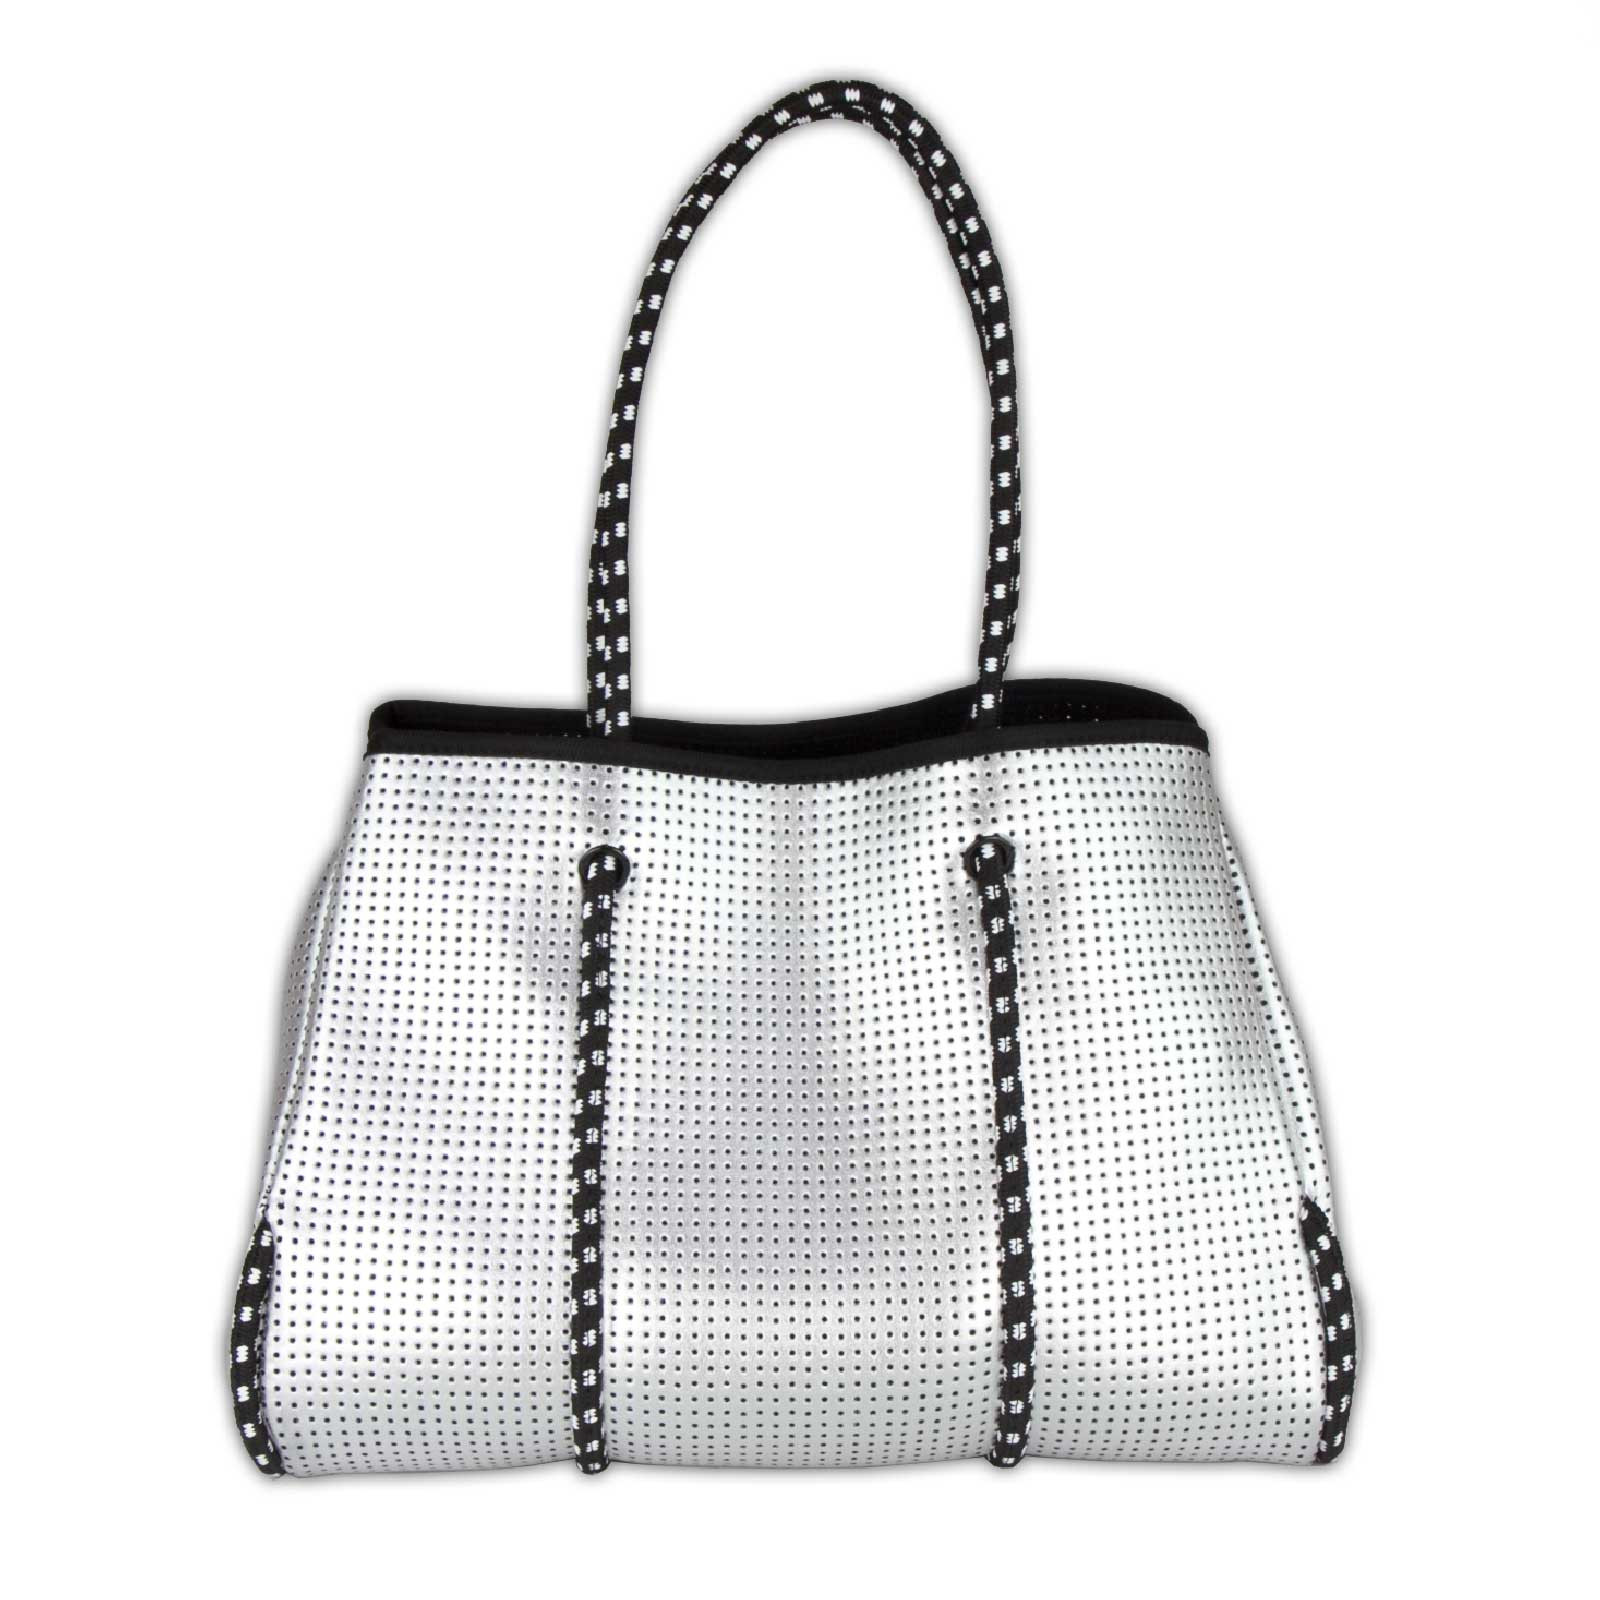 NEOBAGS Neoprene Ladies Bag